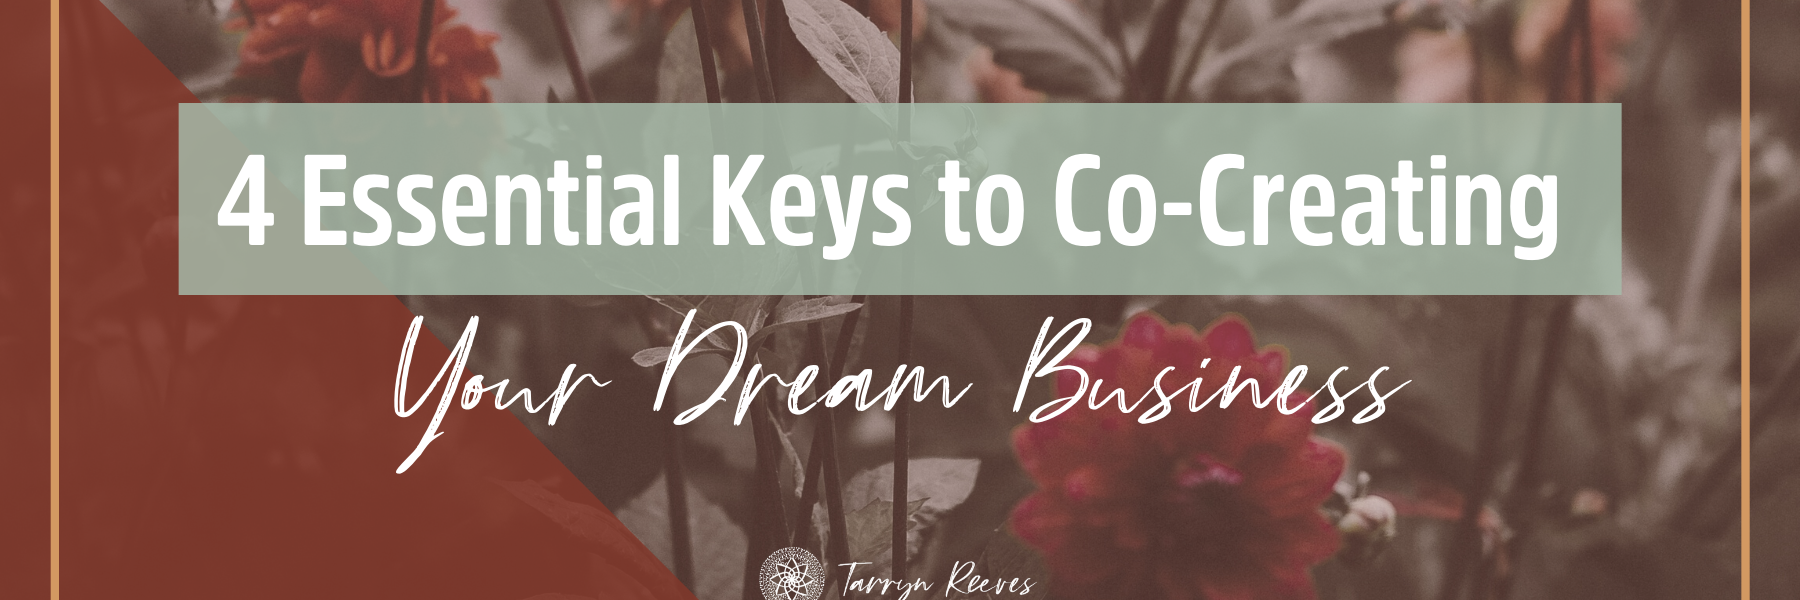 4 Essential Keys to Co-Creating Your Dream Business